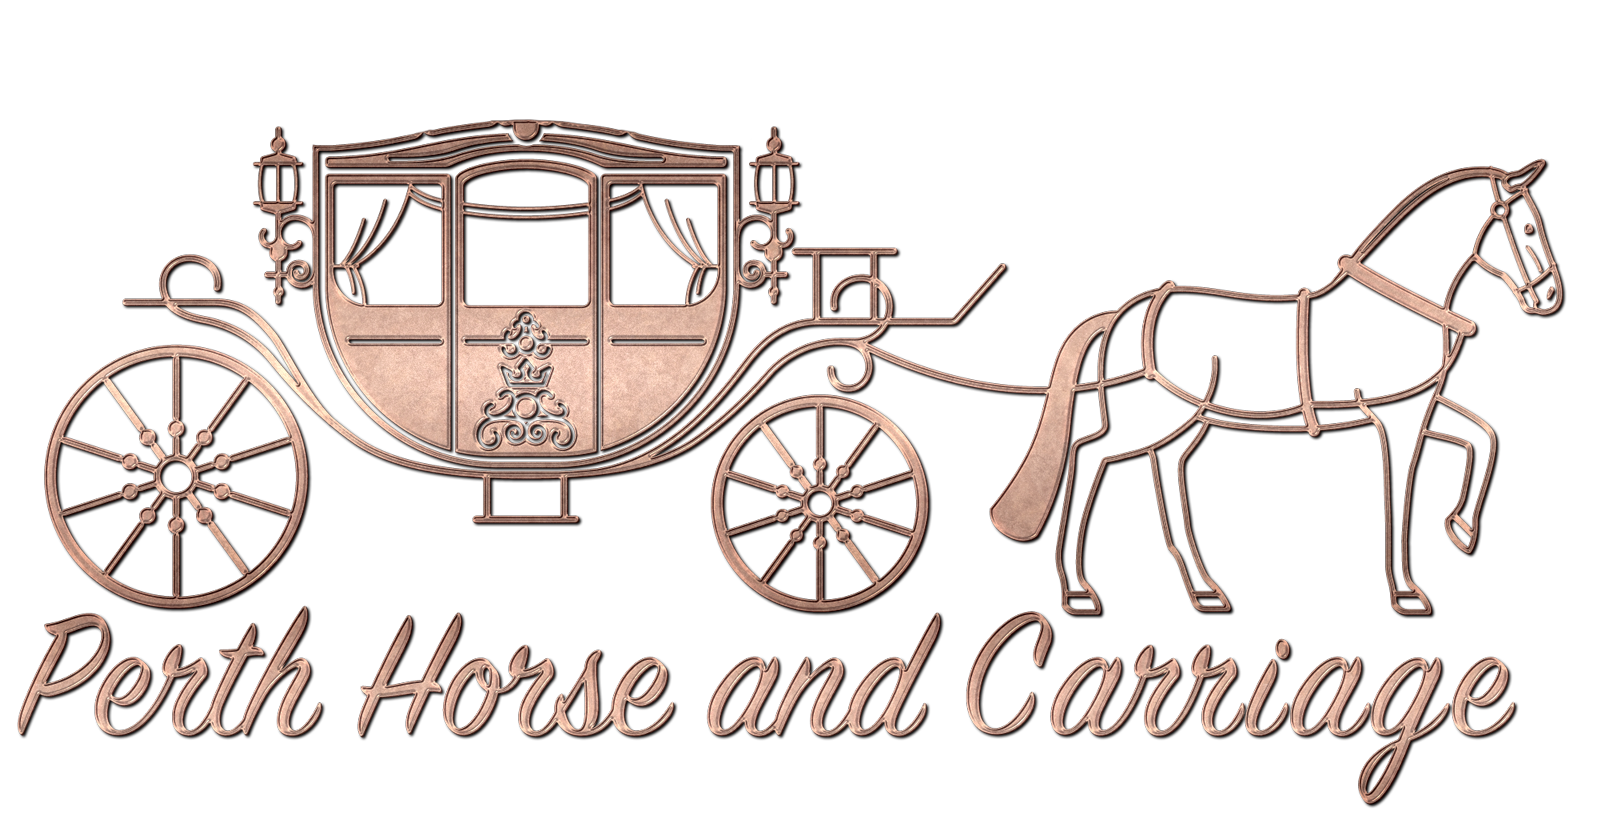 Fairytale clipart carrage. Perth horse and carriage